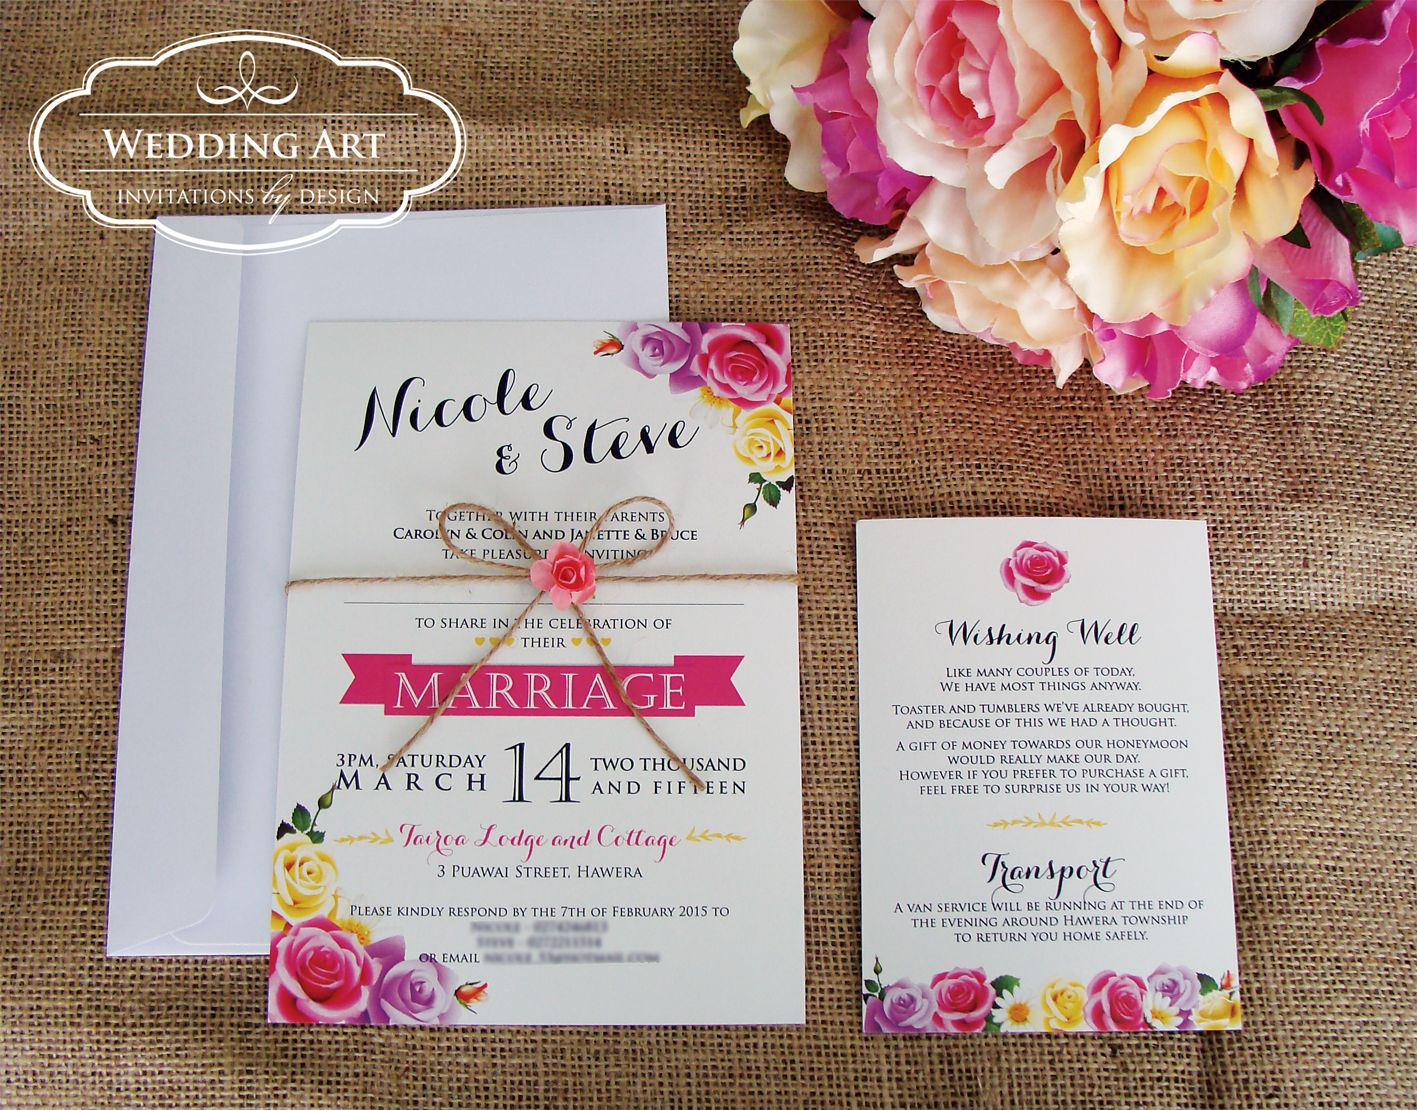 wedding invitation online purchase%0A Pretty vintage rose wedding invitation with twine and paper rose   www weddingart co